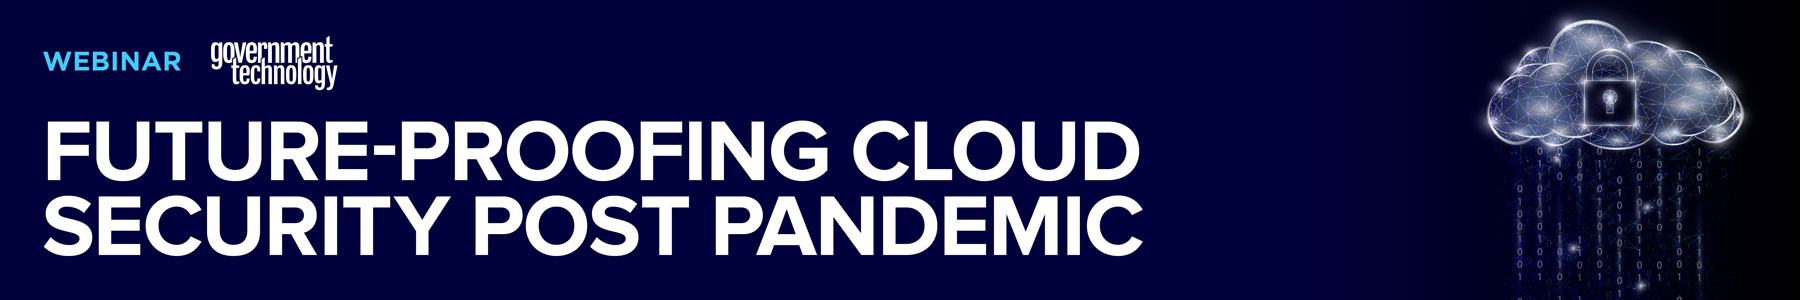 Future-Proofing Cloud Security Post Pandemic